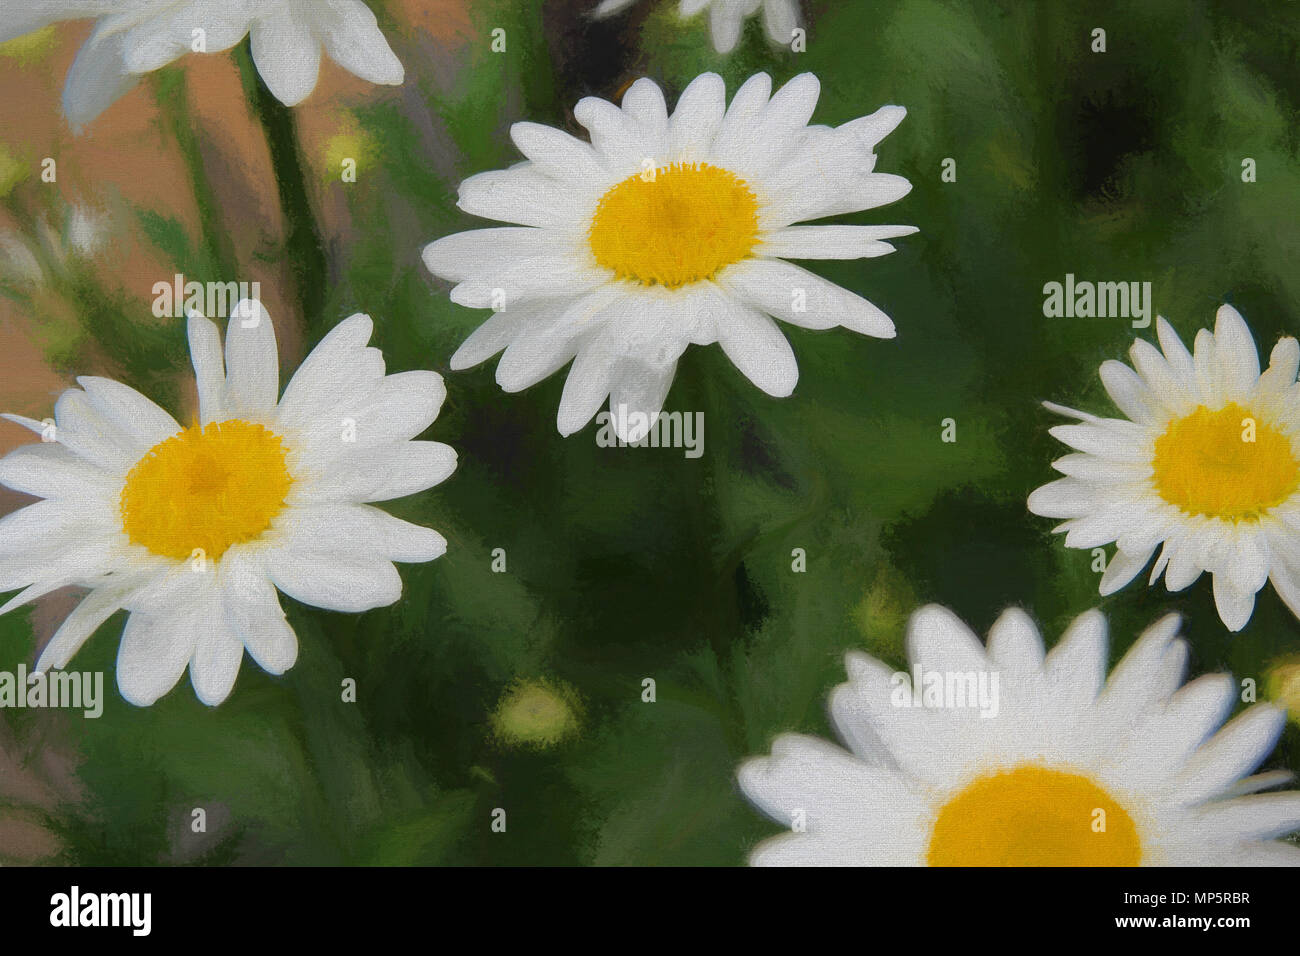 Atrsy Soft Daisies on green background - Stock Image